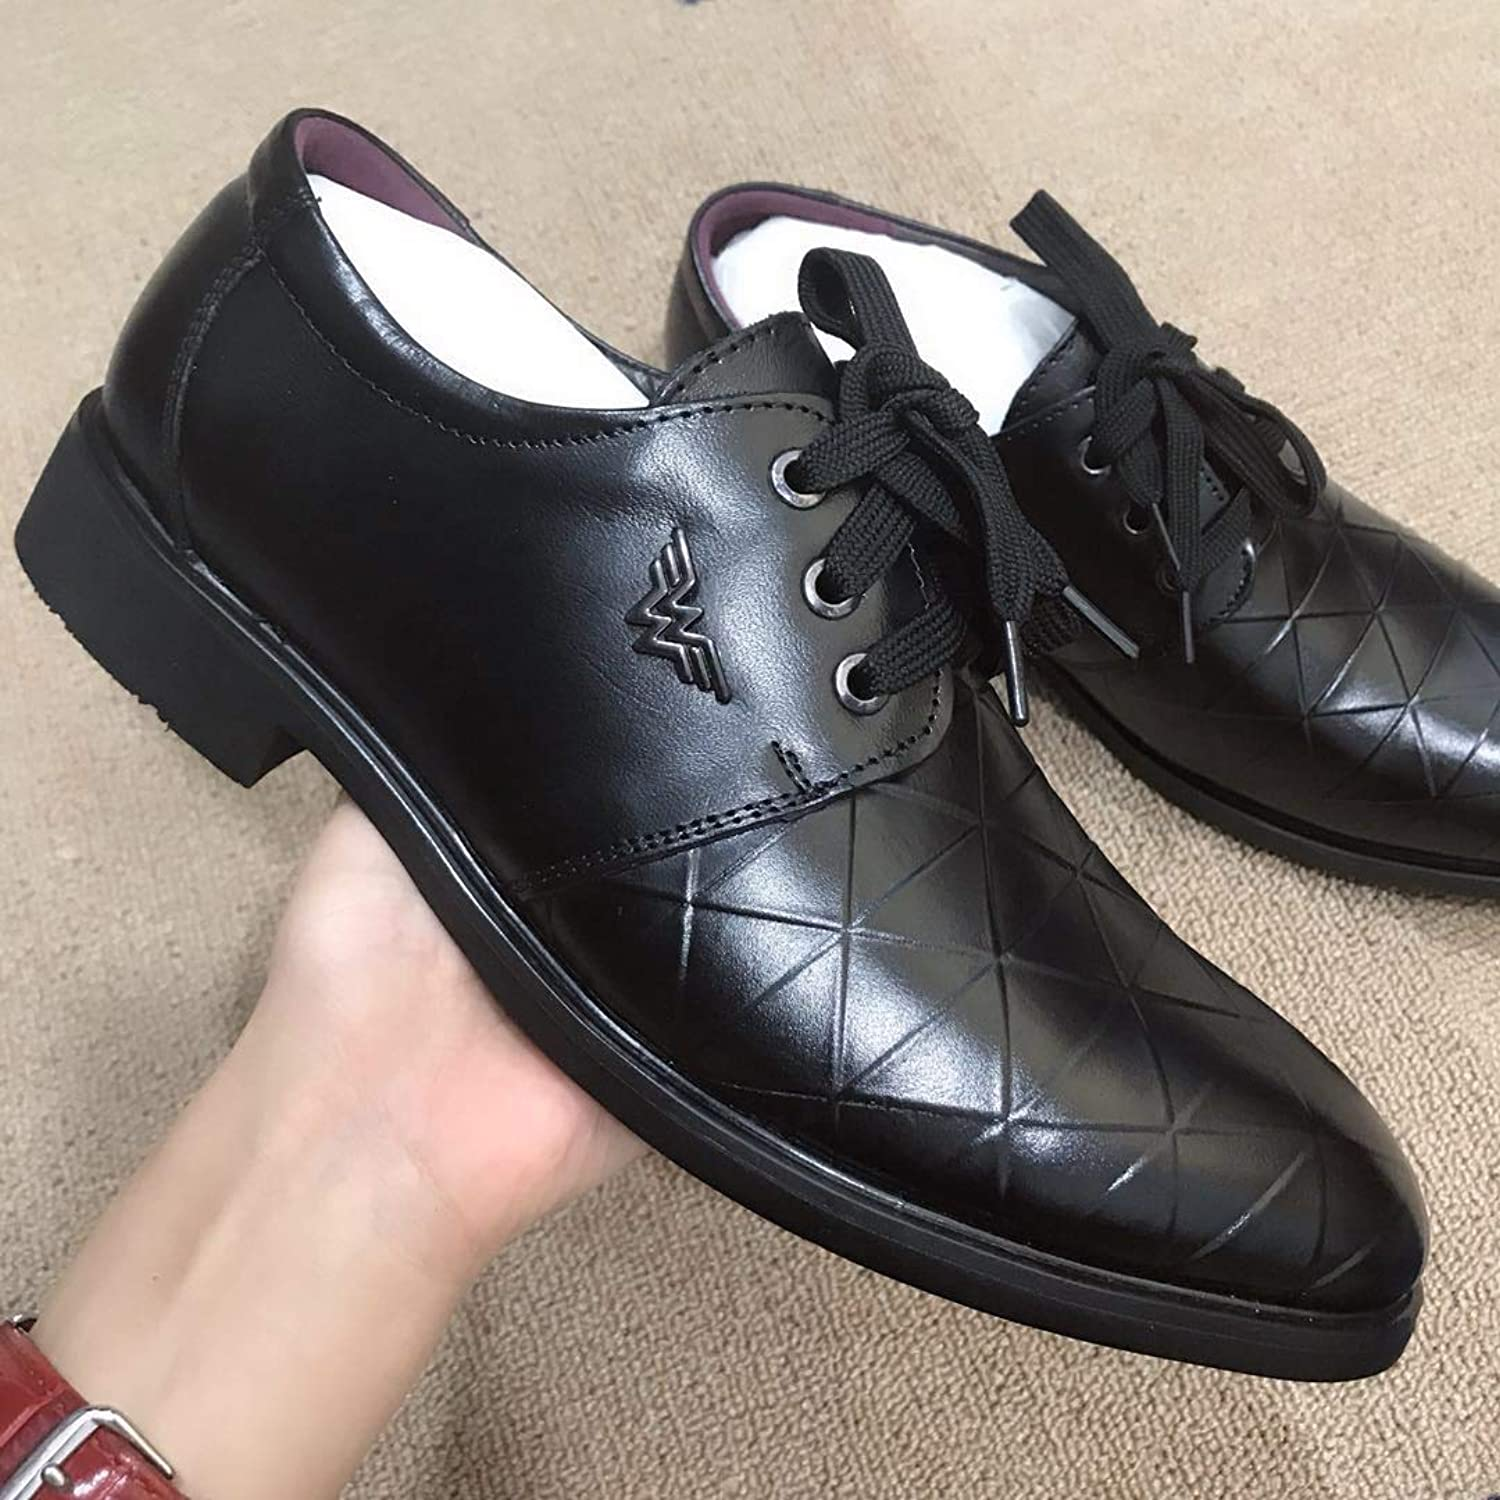 LOVDRAM Casual shoes Men'S Casual shoes New Pu Men'S shoes Business Casual shoes Men'S Head Layer Pu Pointed